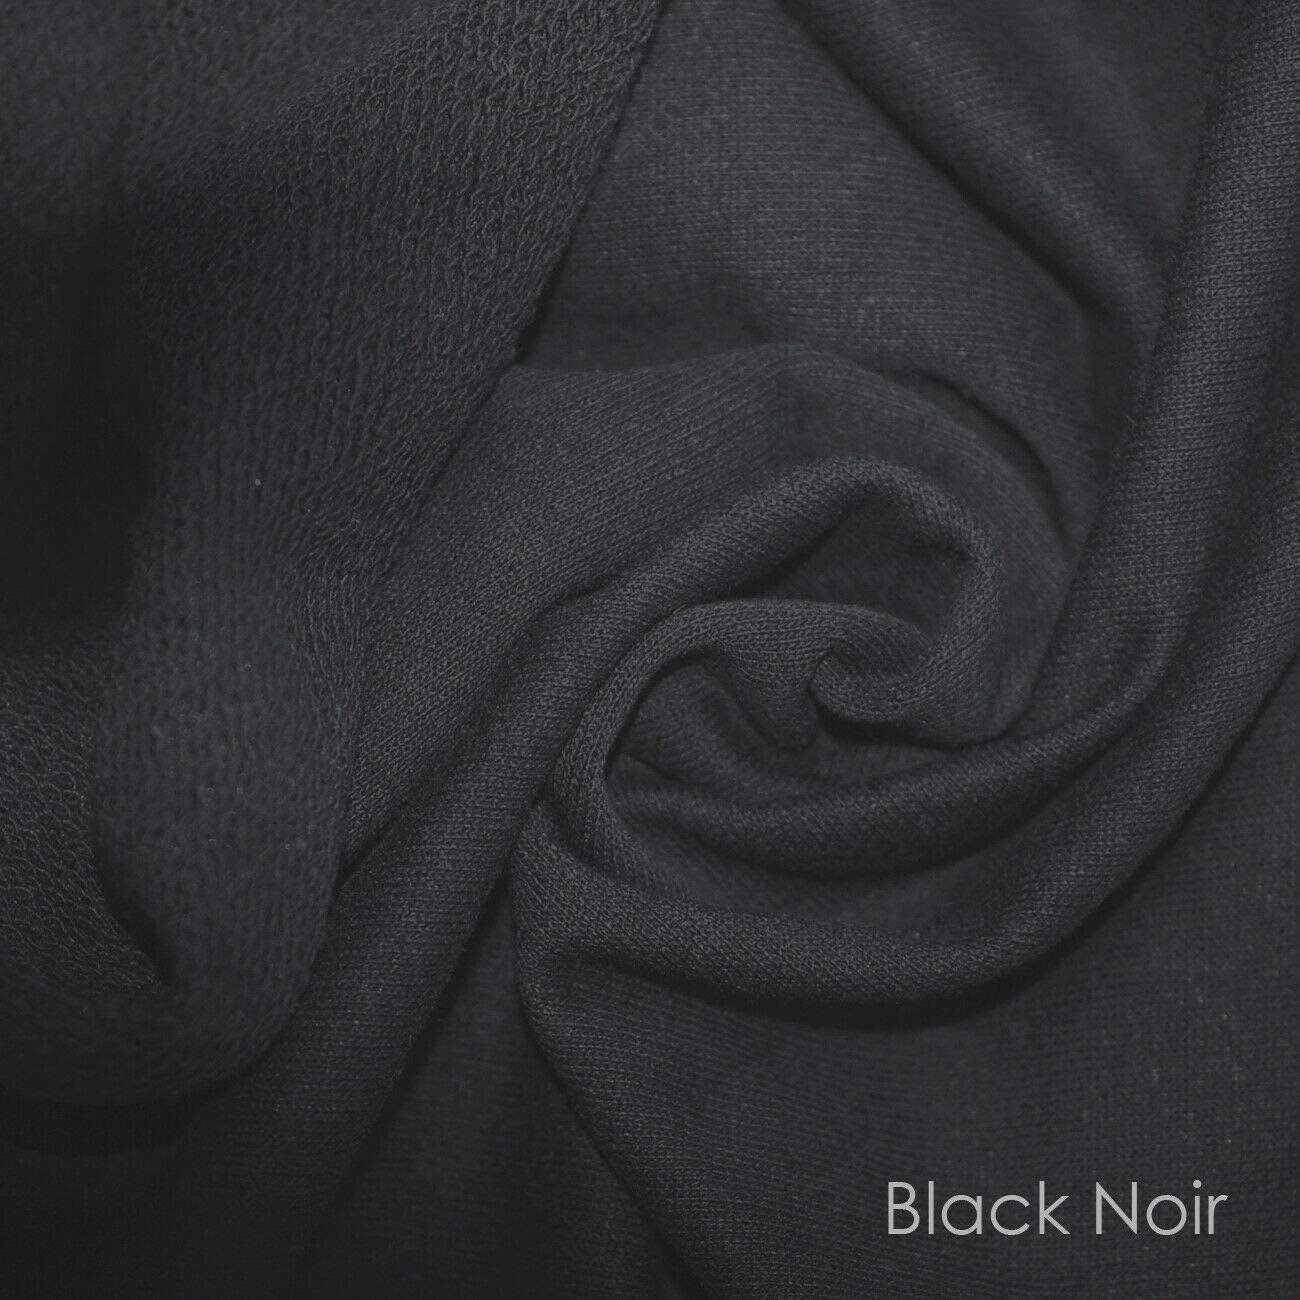 Sweatshirt Fabric Loop Back,British Made,Cotton Rich,French Terry Fabric /& Matching Rib.Authentic Sweatshirting Material Cloth by Neo Knitting.Width 178cms.Scoured Finish 1 Mt Fabric Black Noir